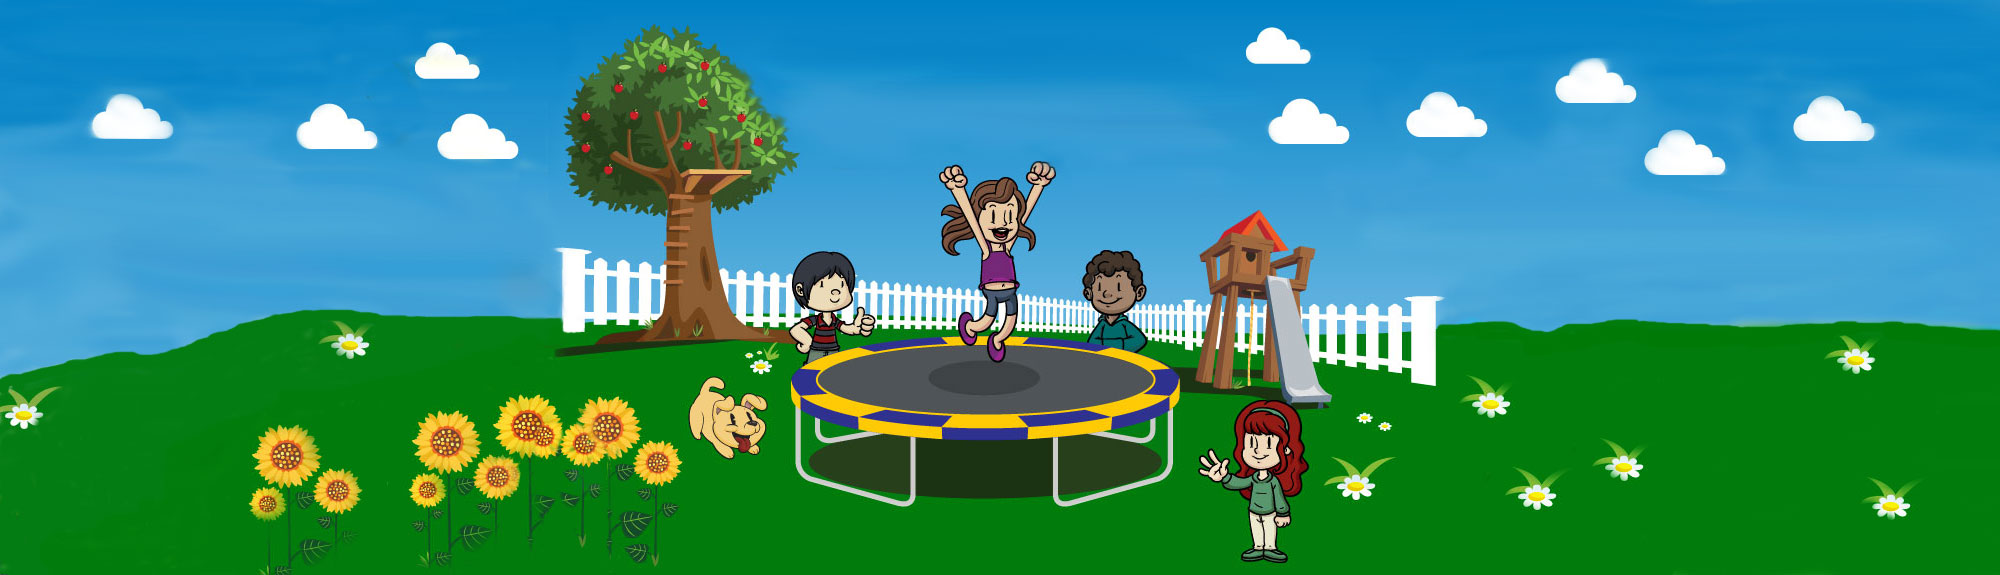 backyard scene with Best Trampolines: Vikan Trampolines